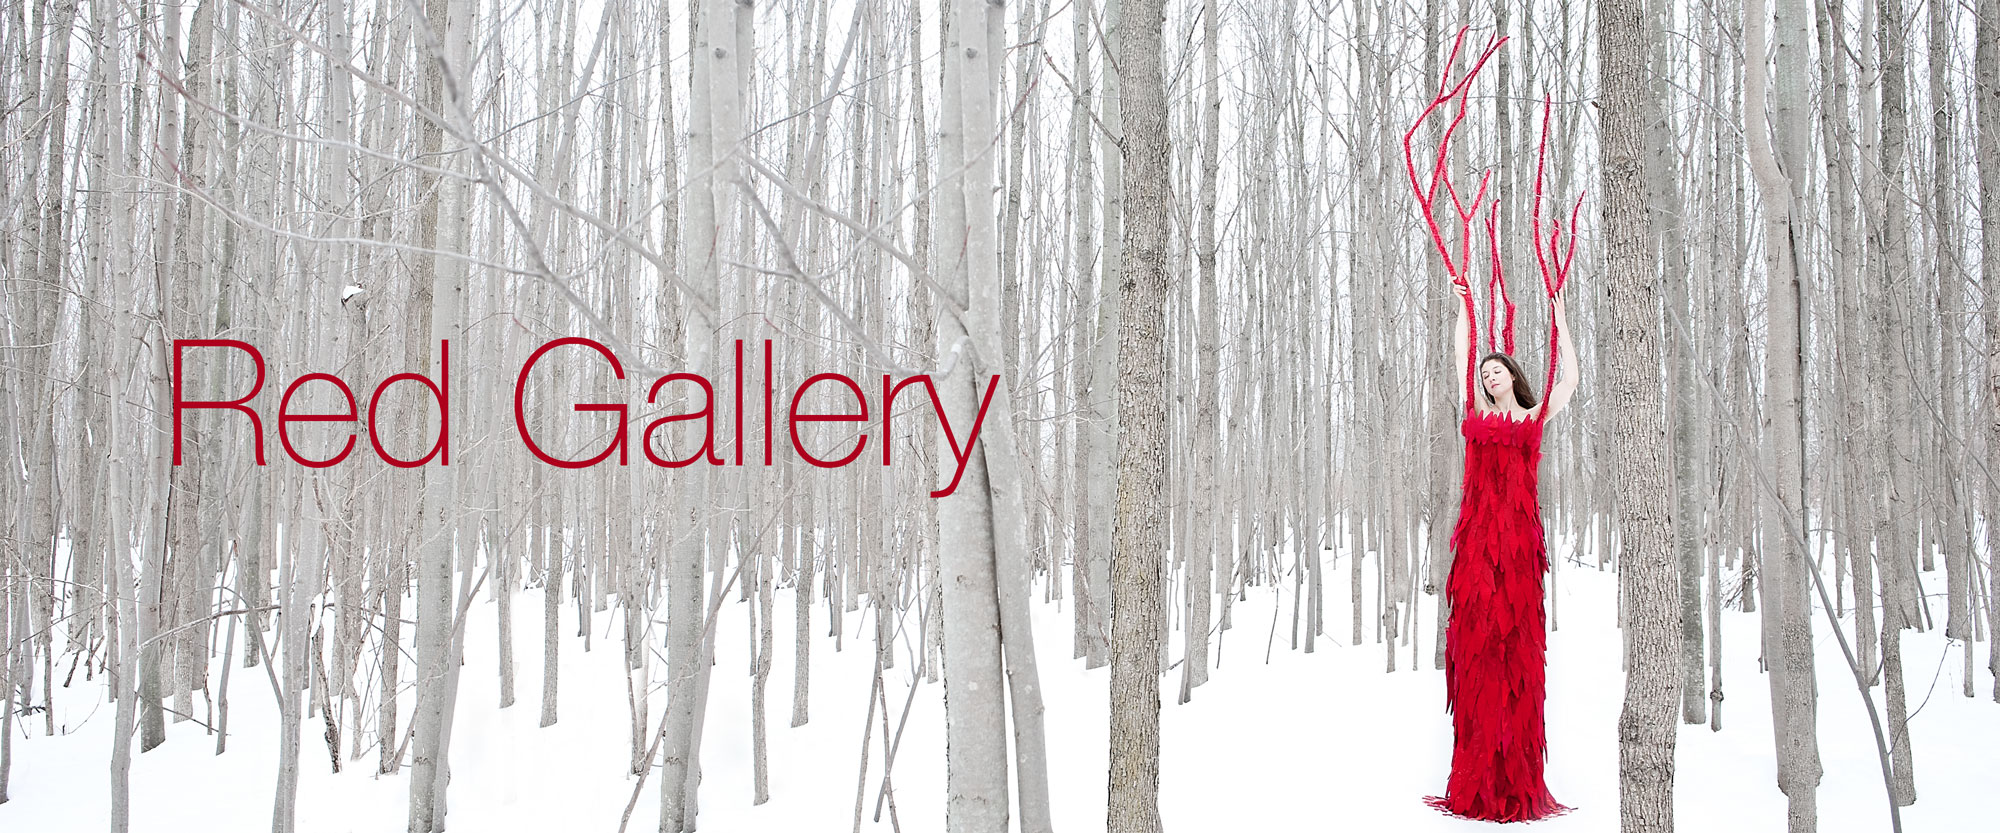 Laüra Hollick's Red Gallery